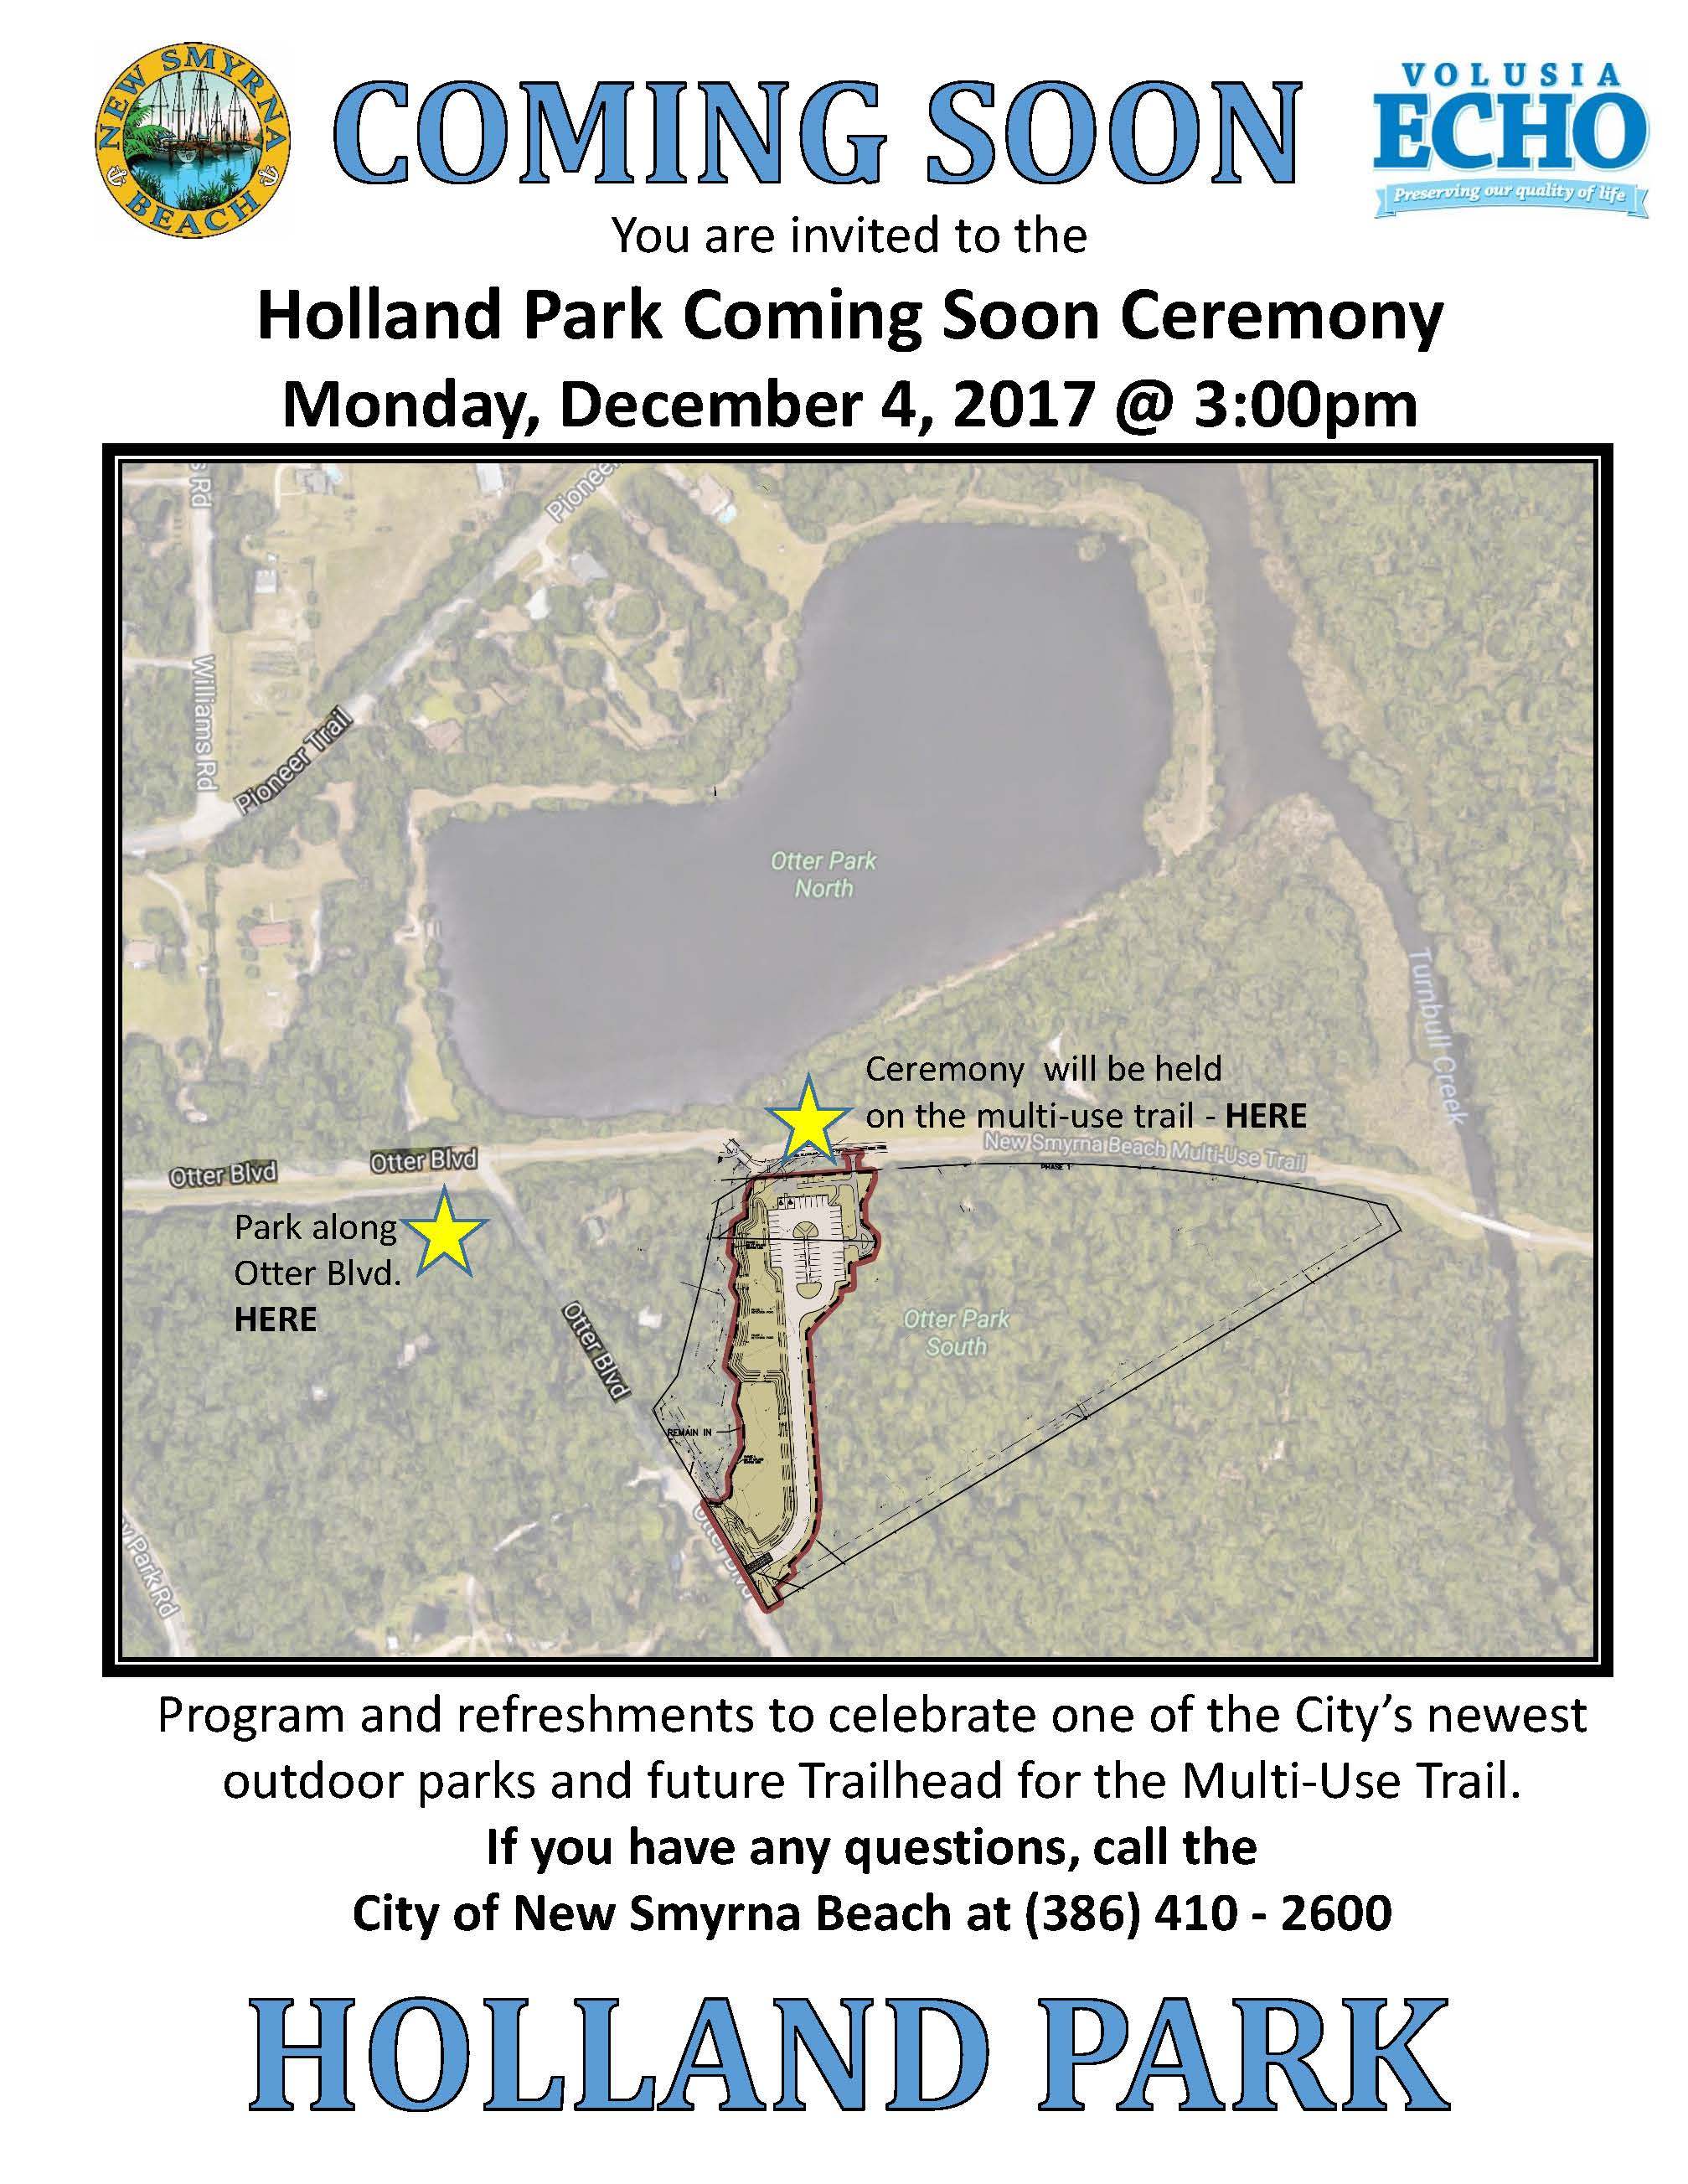 HOLLAND PARK - COMING SOON FLYER (002)